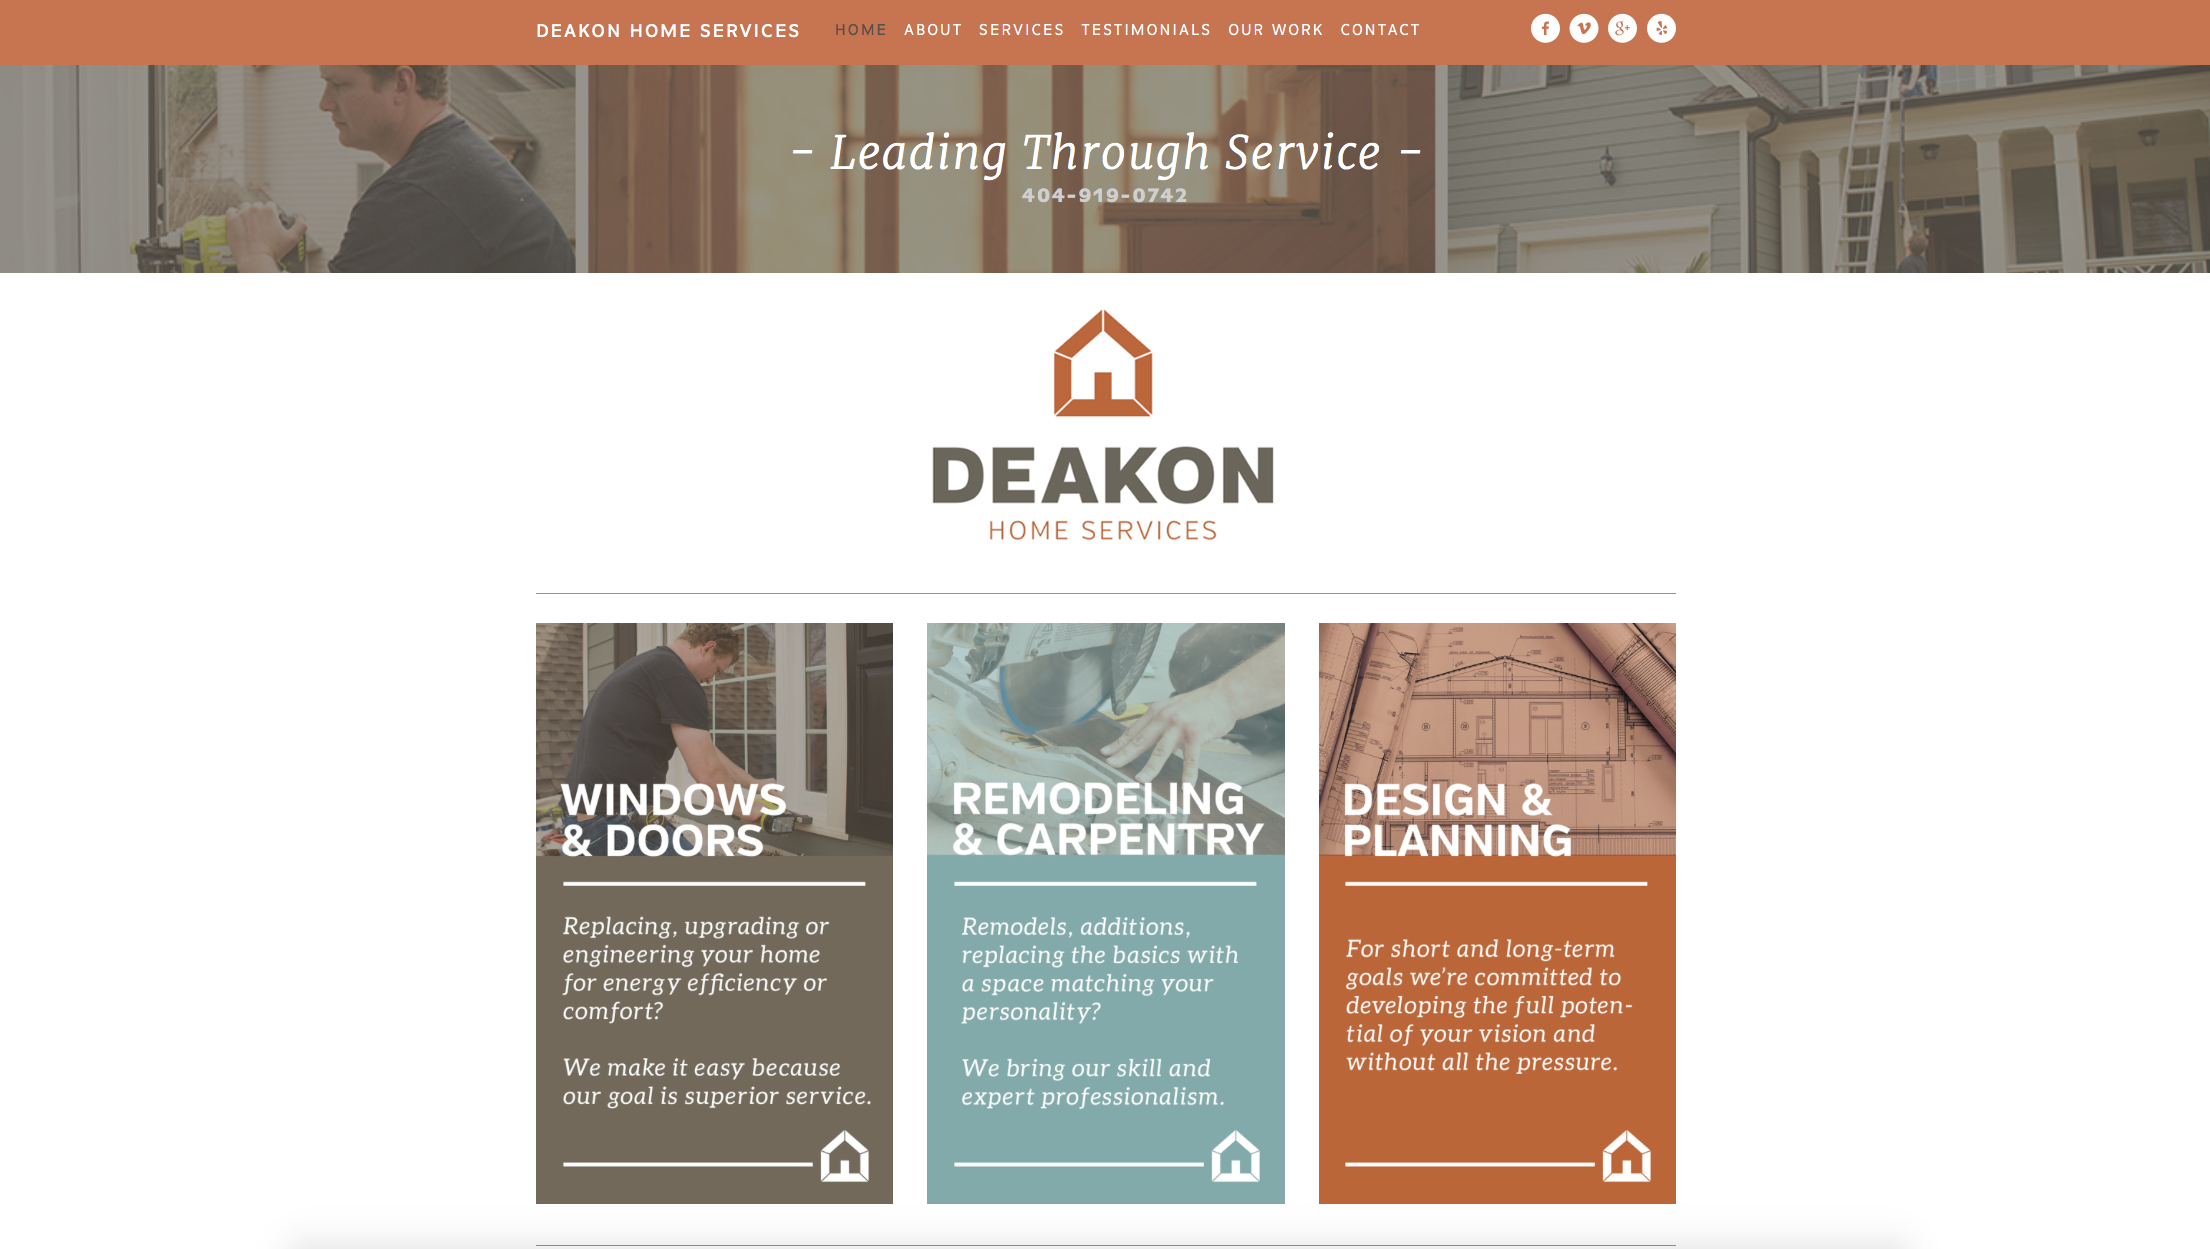 Deakon Home Services (Acworth, GA)